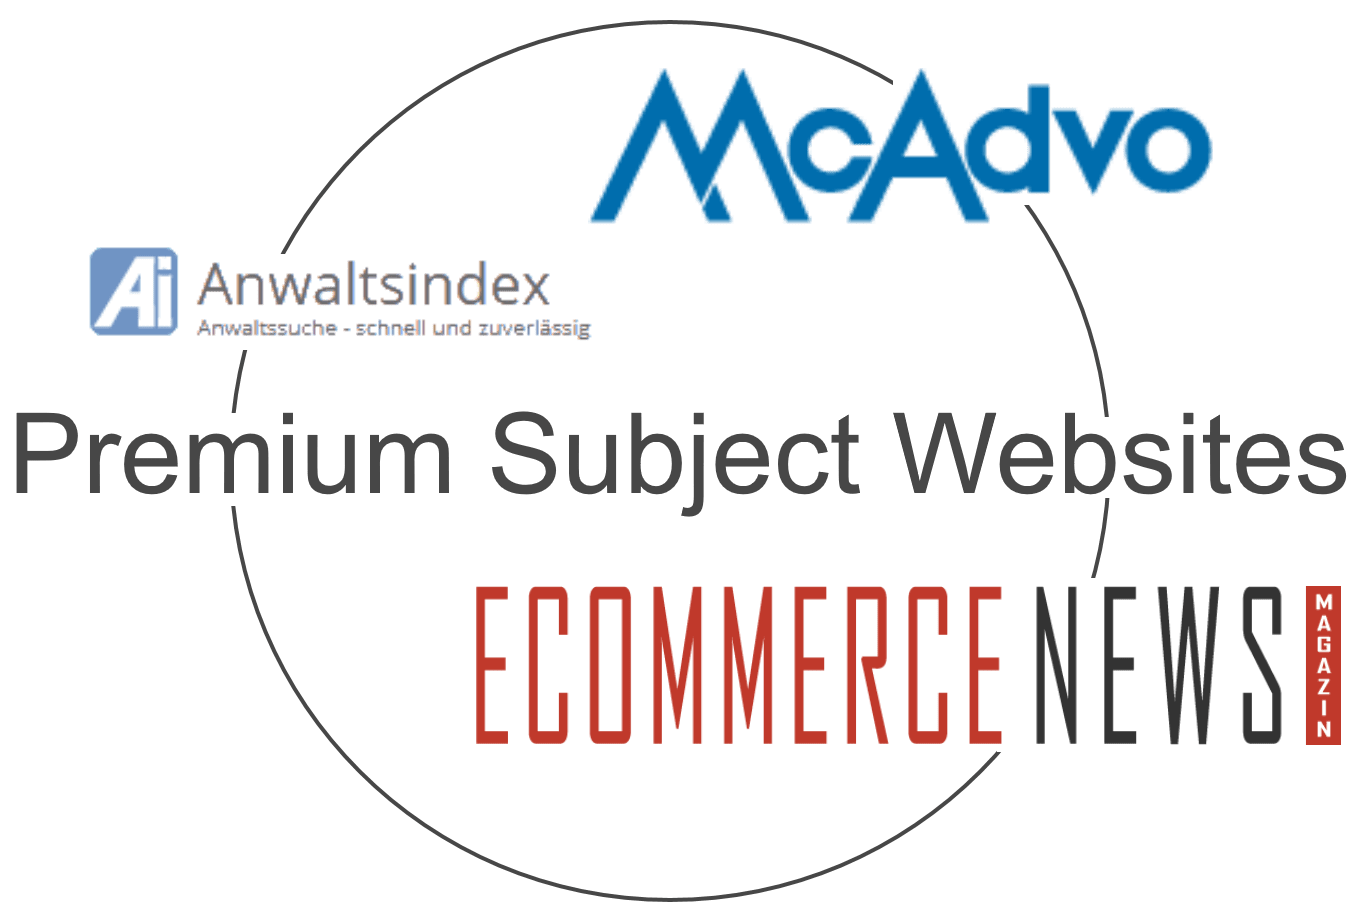 Premium Subject Websites